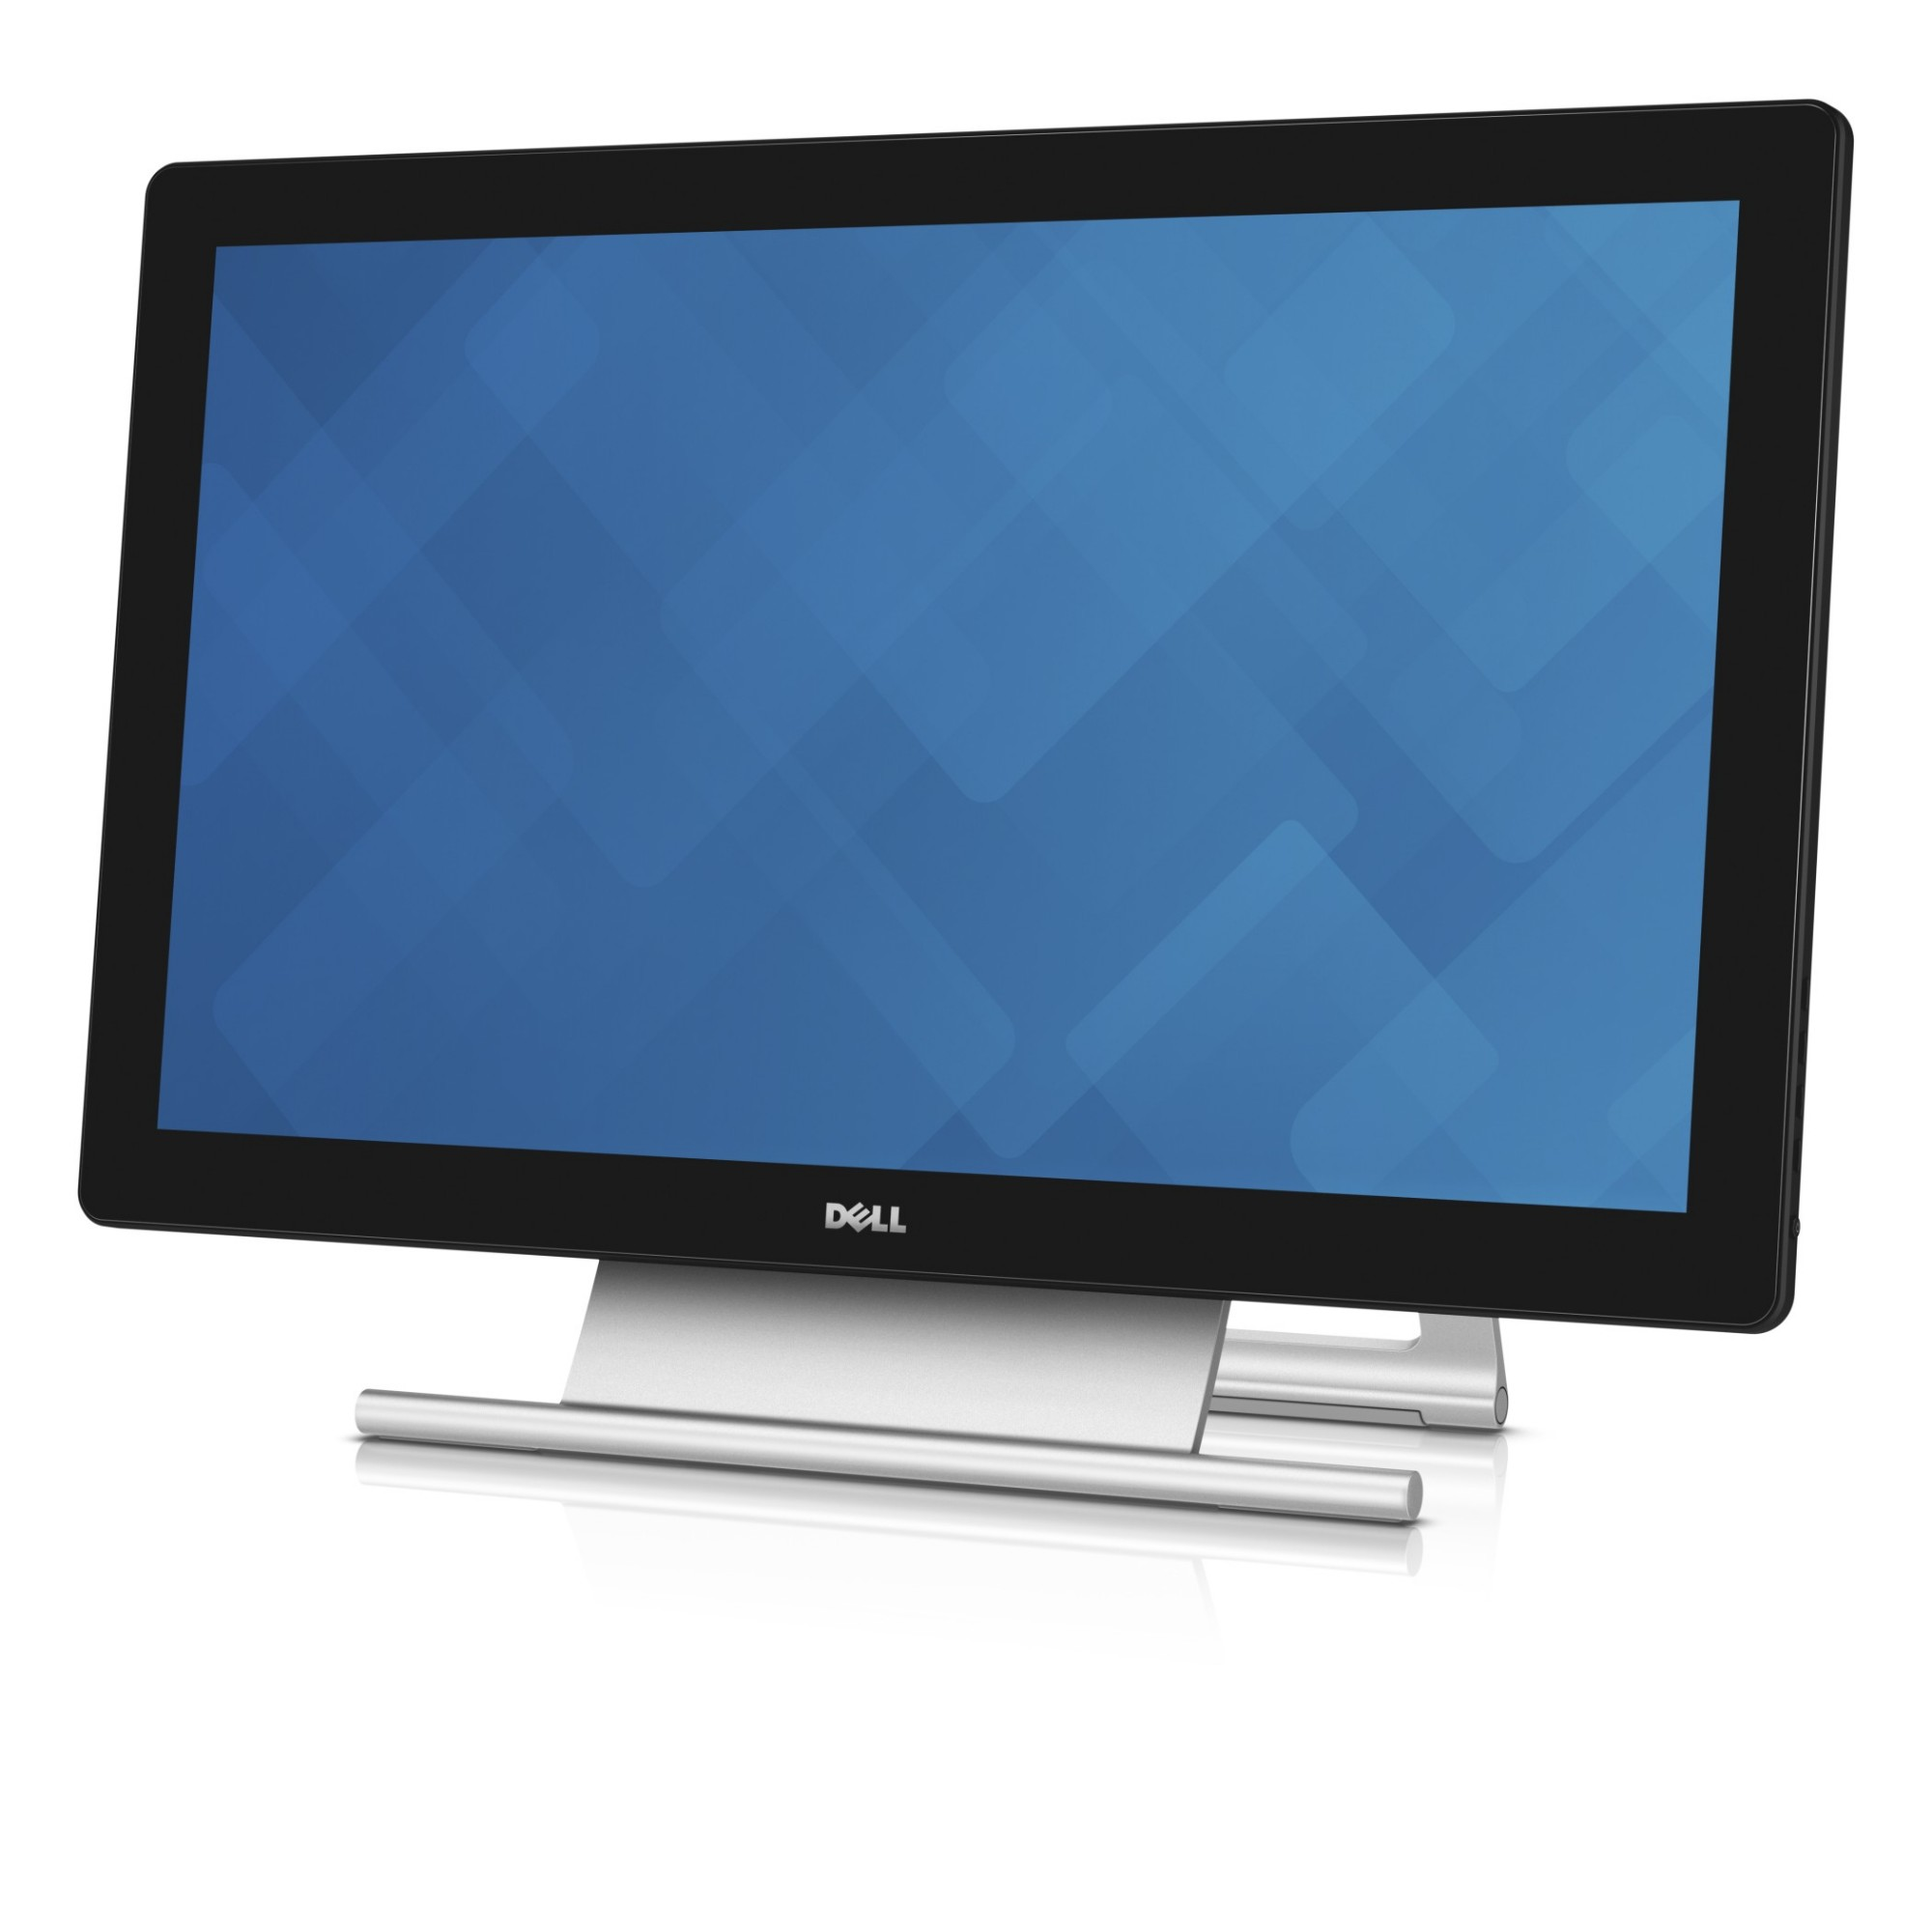 dell p2314t 23 1920 x 1080pixels tabletop black silver touch screen monitor 0 in distributor. Black Bedroom Furniture Sets. Home Design Ideas